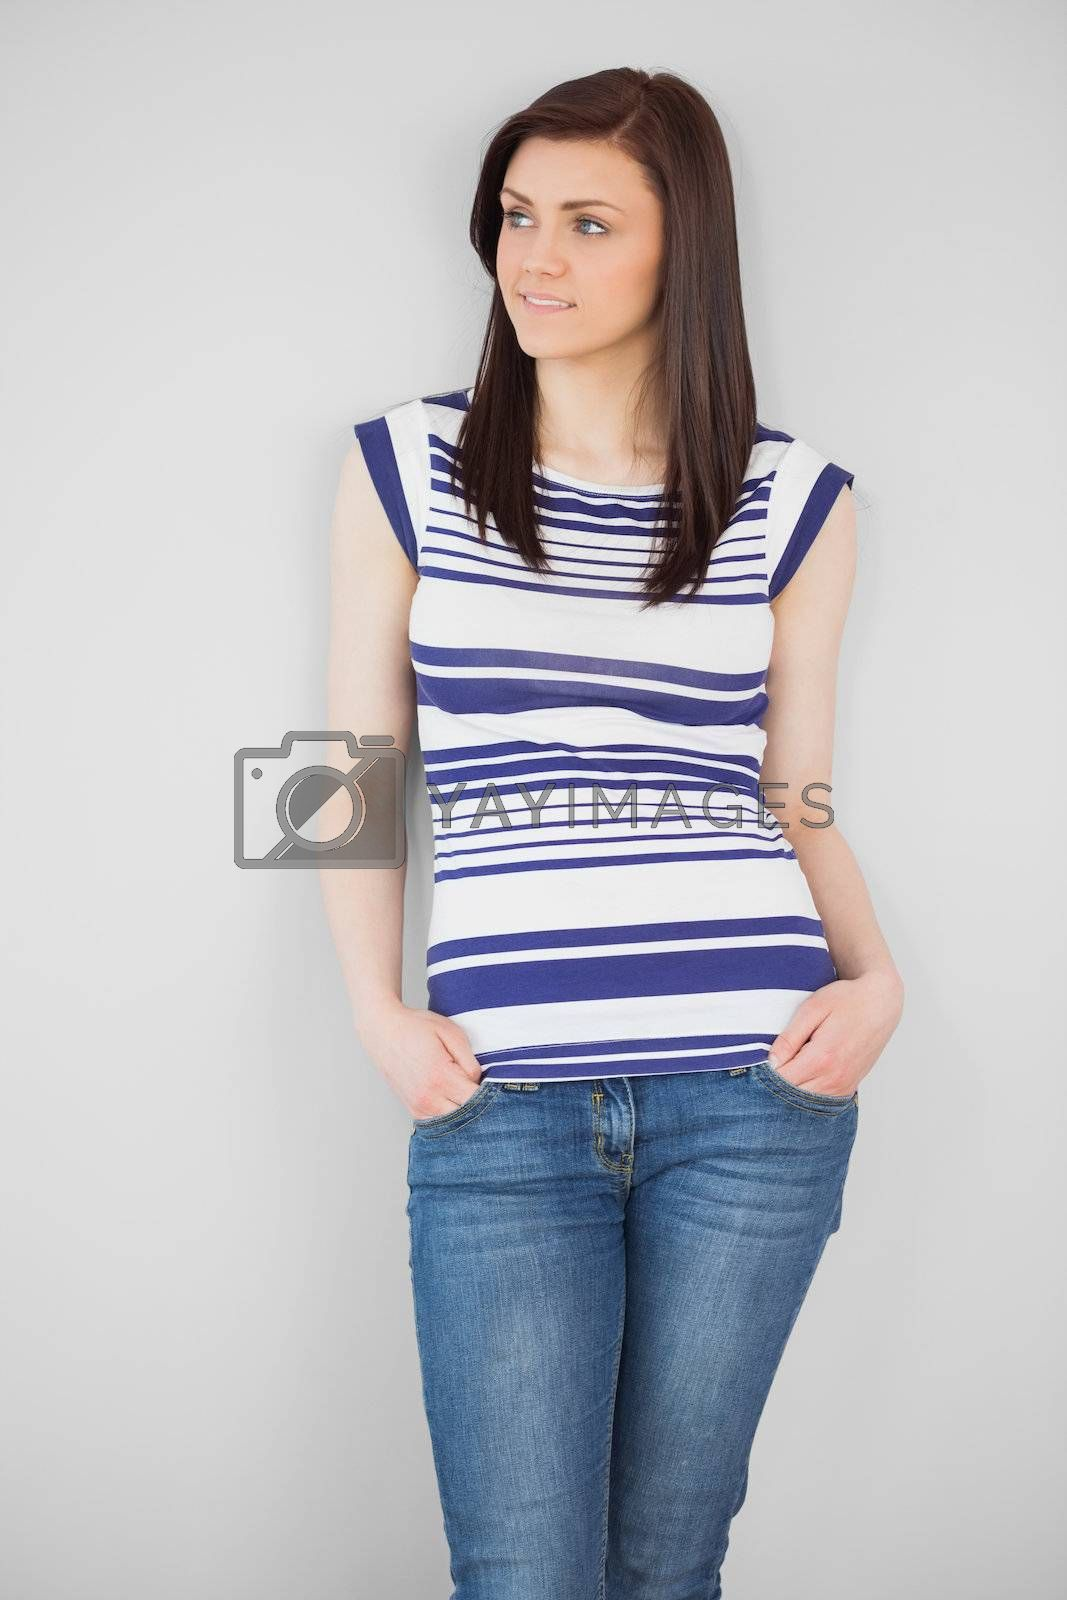 Stylish girl standing and looking away by Wavebreakmedia